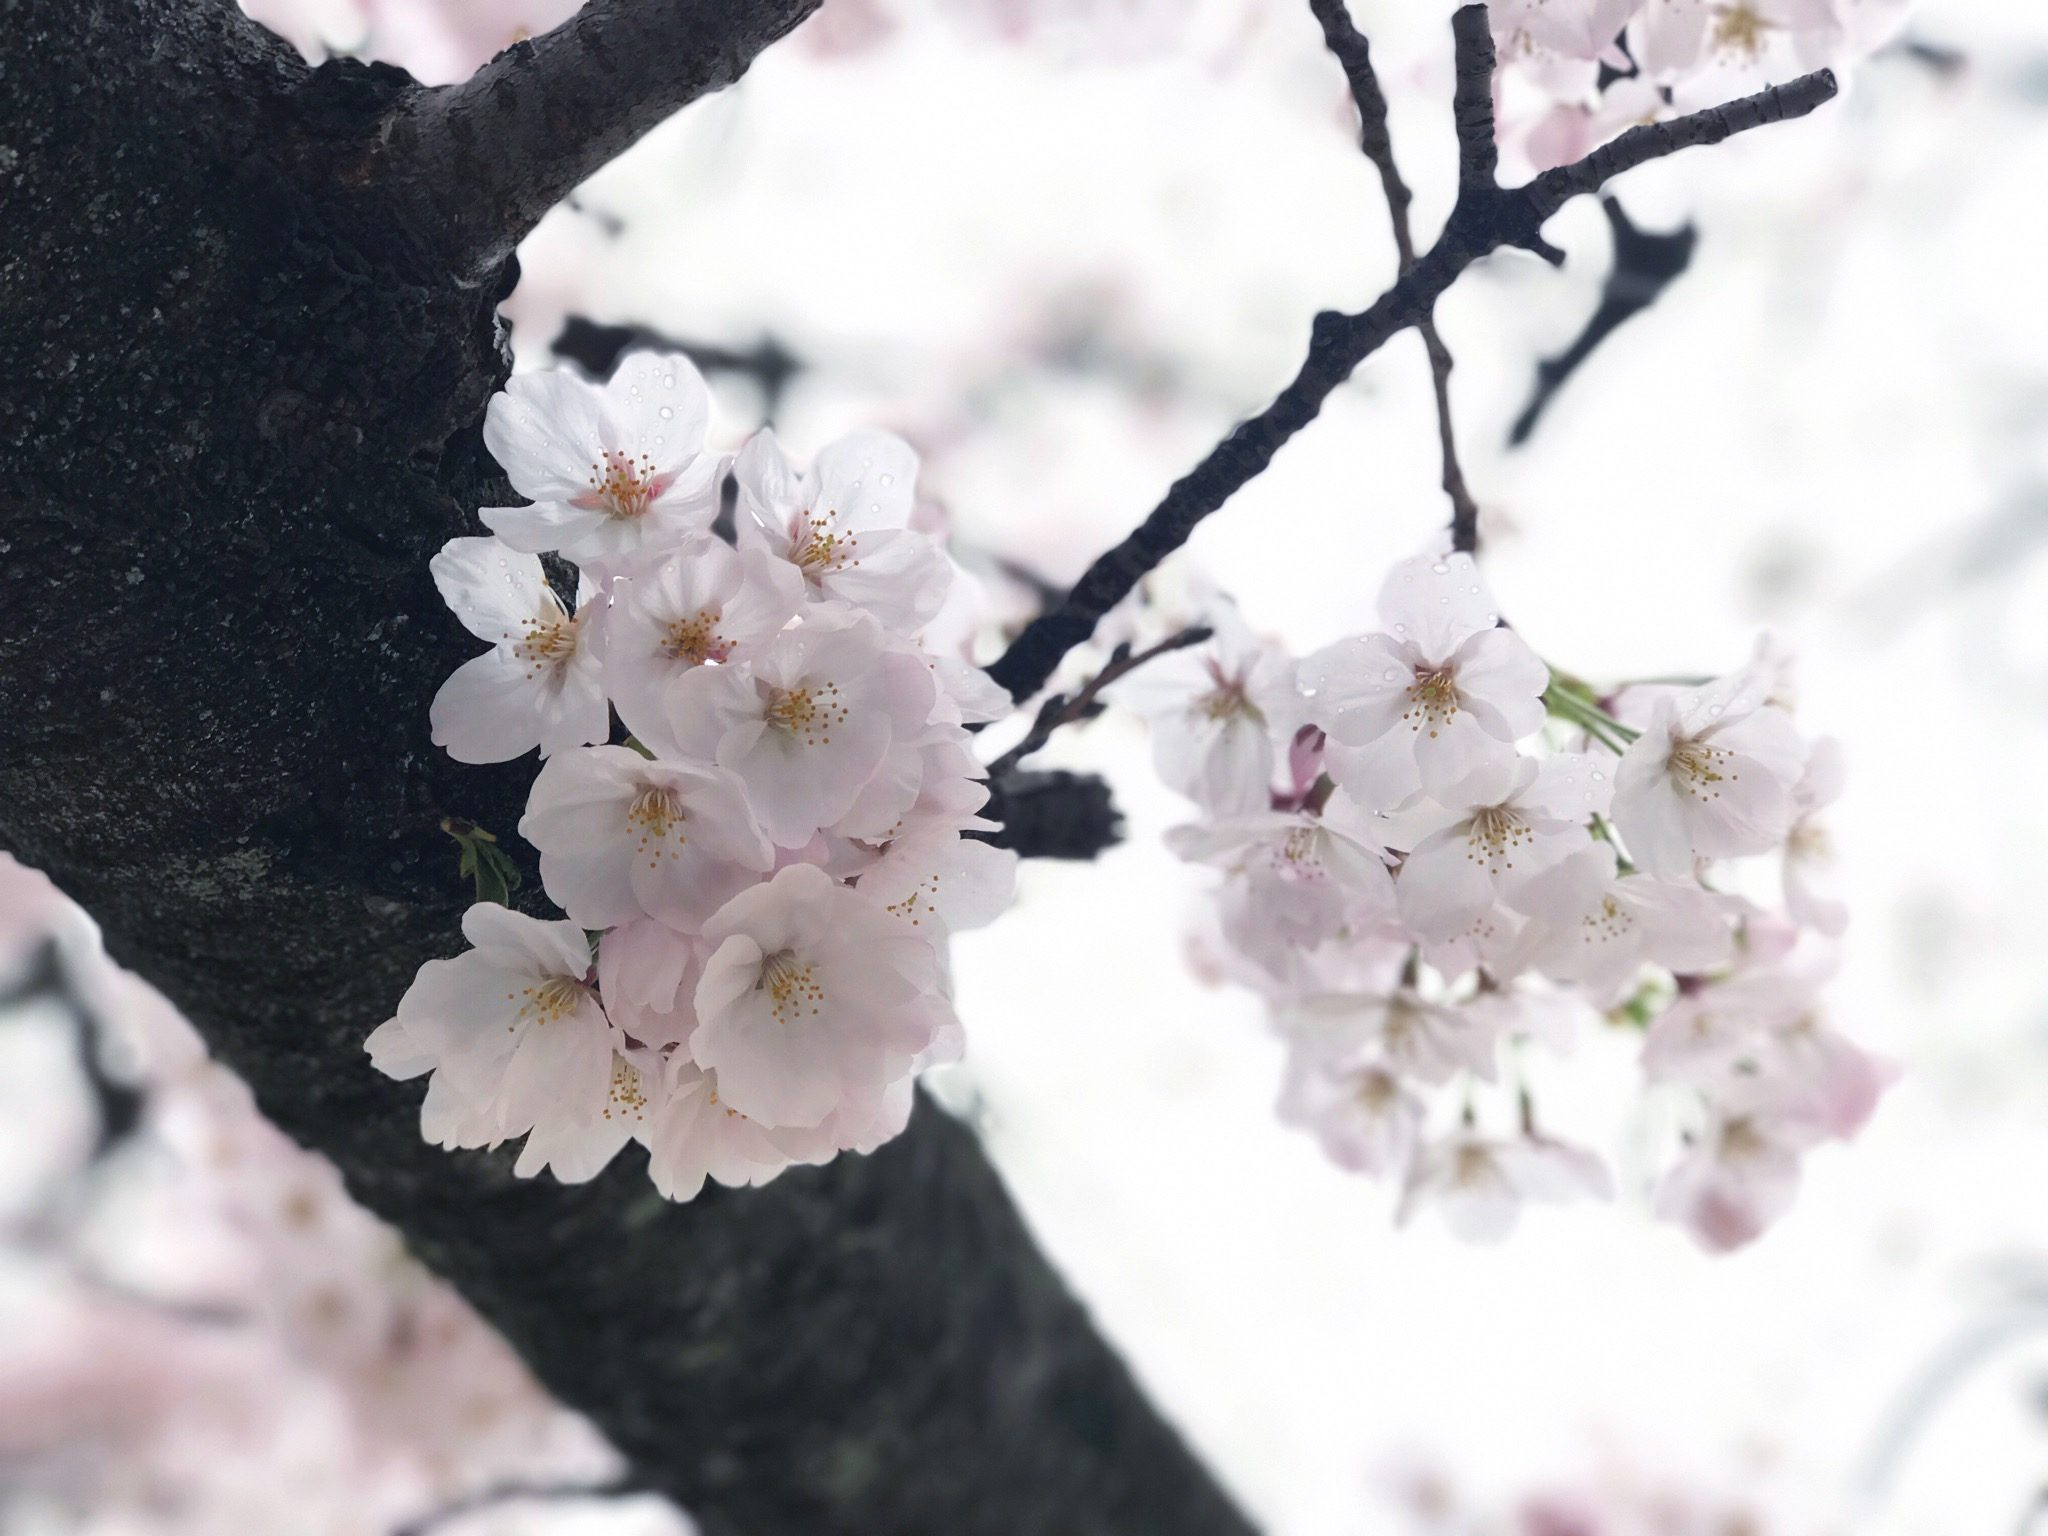 It is spring again, a reminder of how beautiful change can truly be – Christina Cayabyab